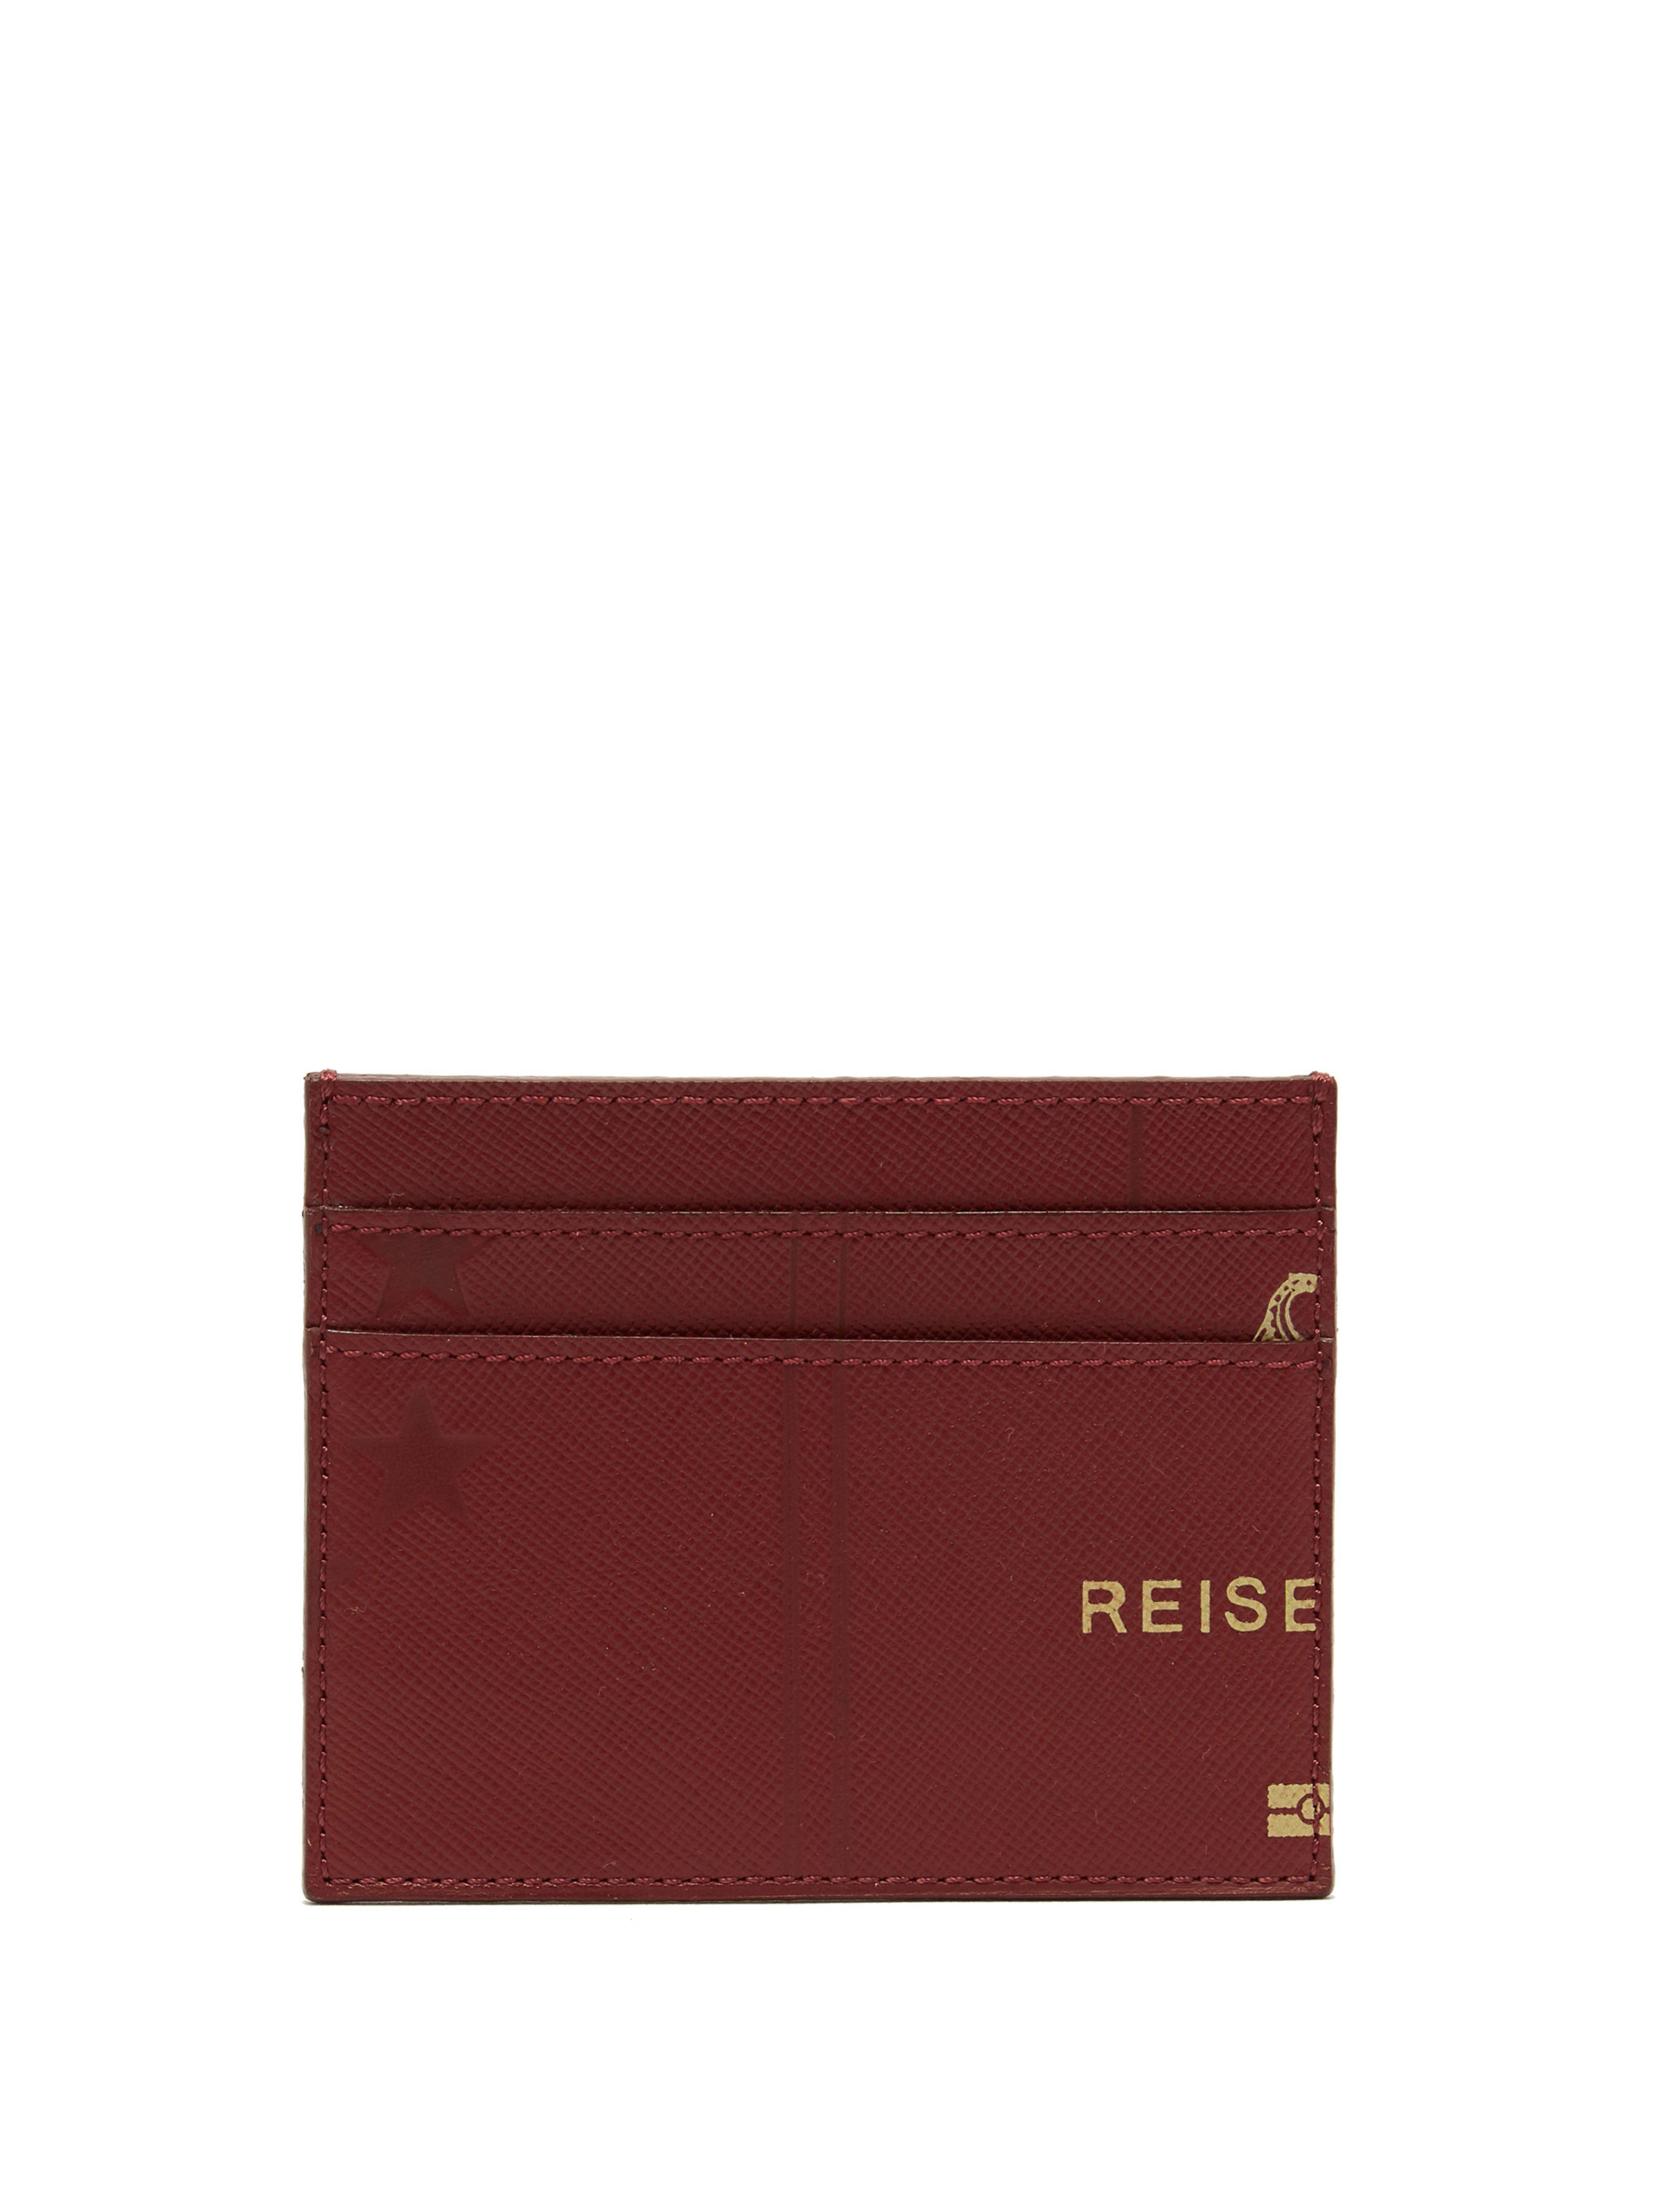 a6a03a4450b Vetements Passport Print Leather Cardholder in Red - Lyst